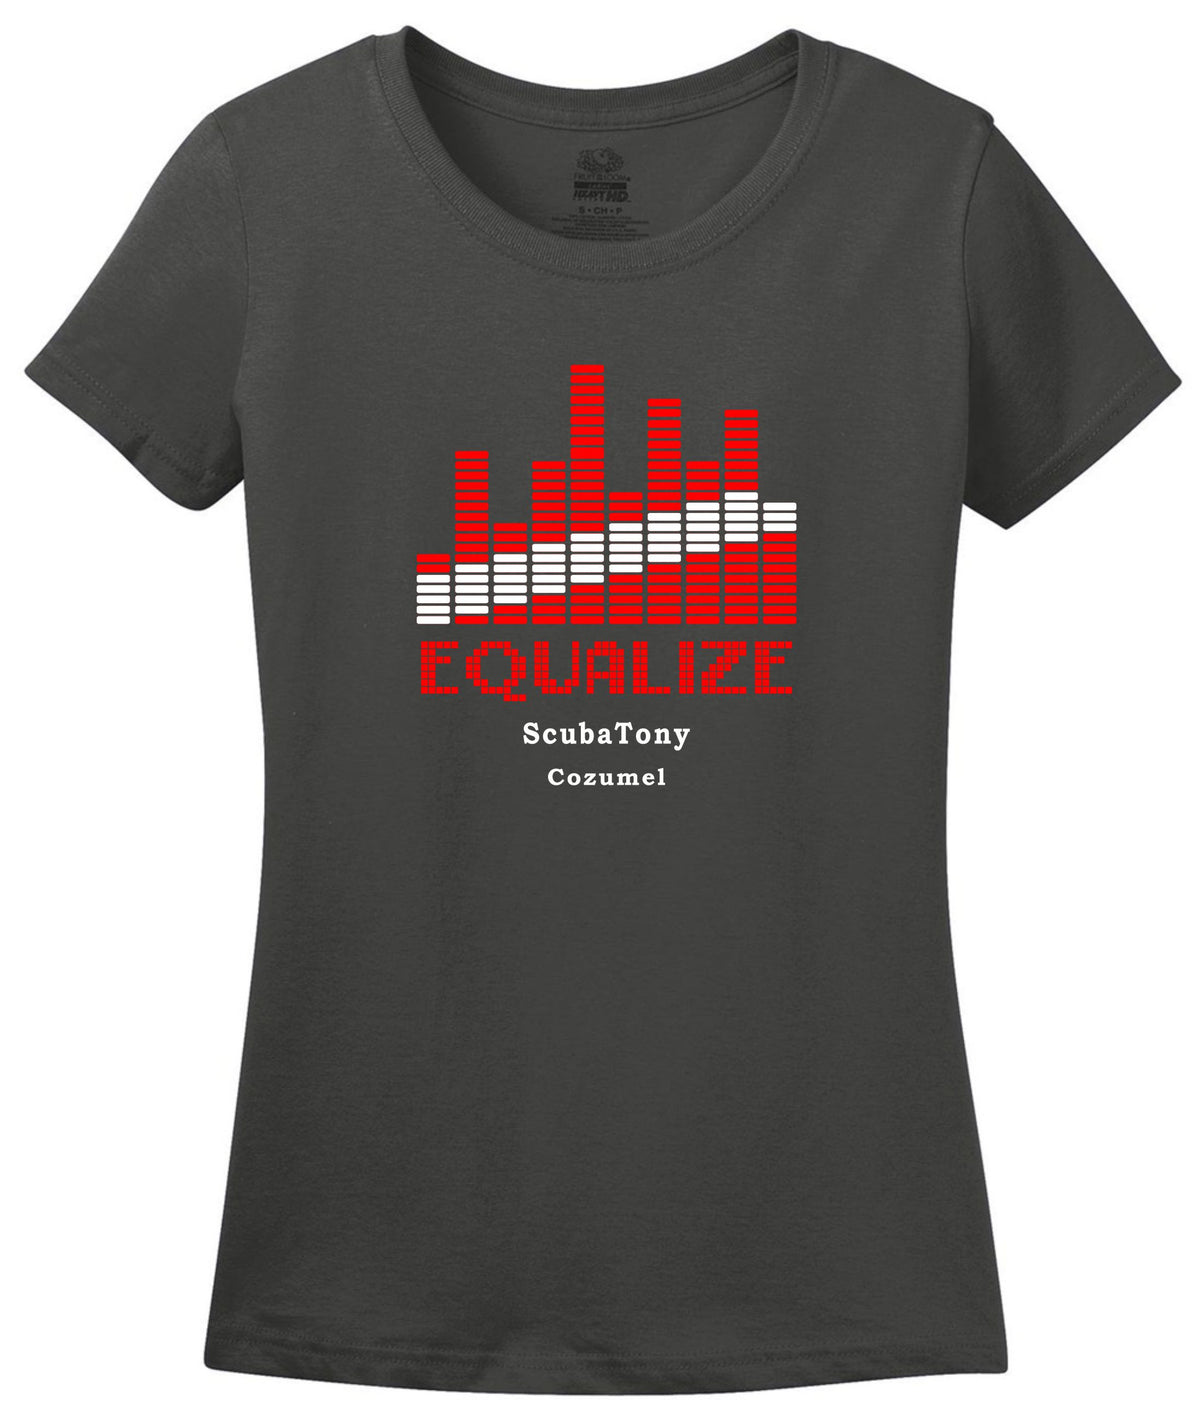 Women's Equalize It